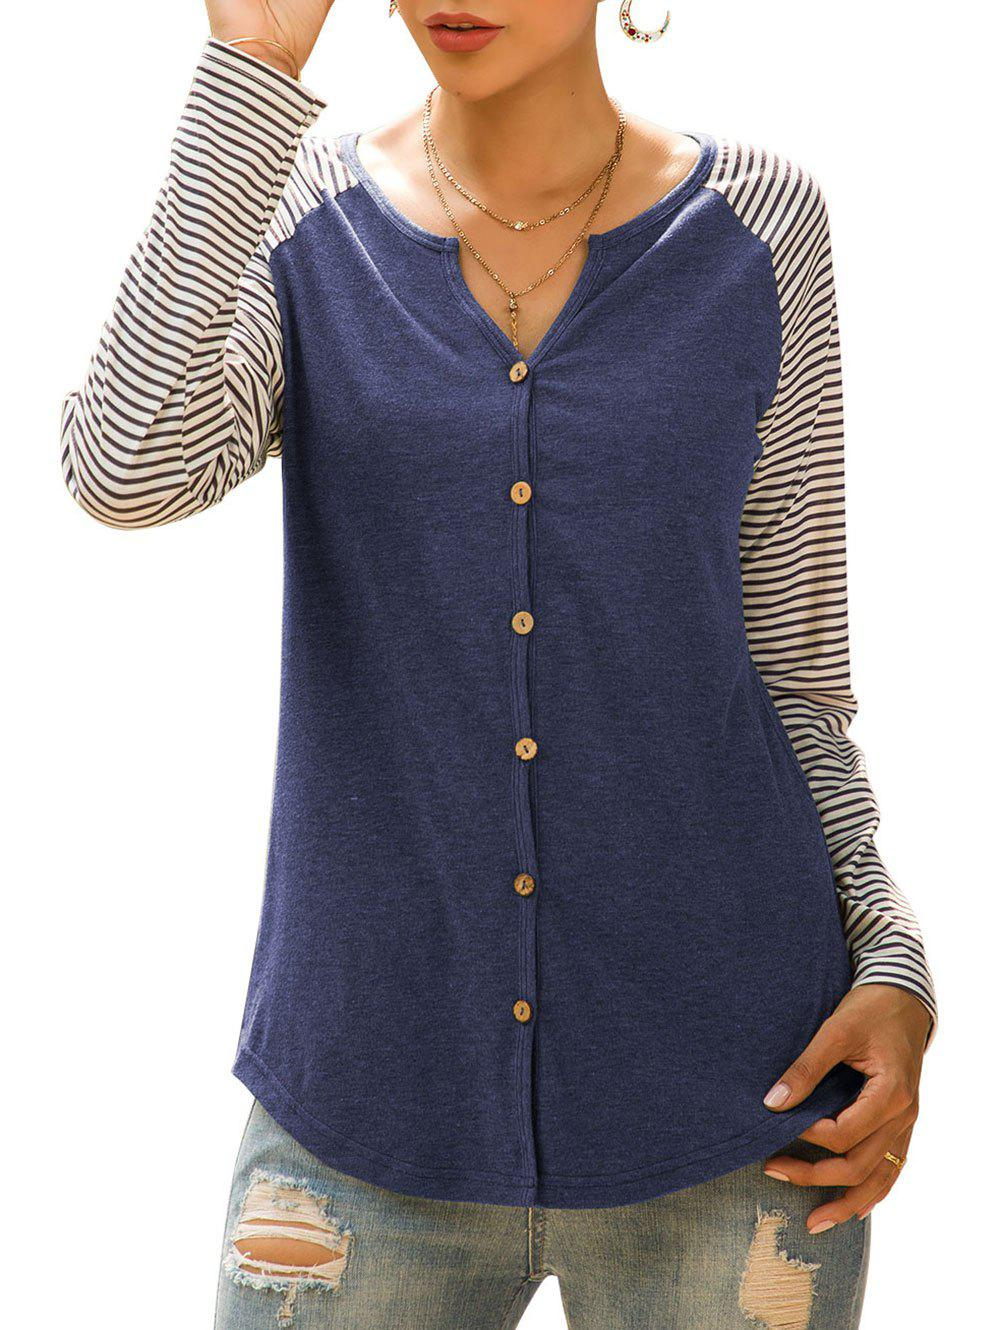 Chic Raglan Sleeve Striped Button Up Top